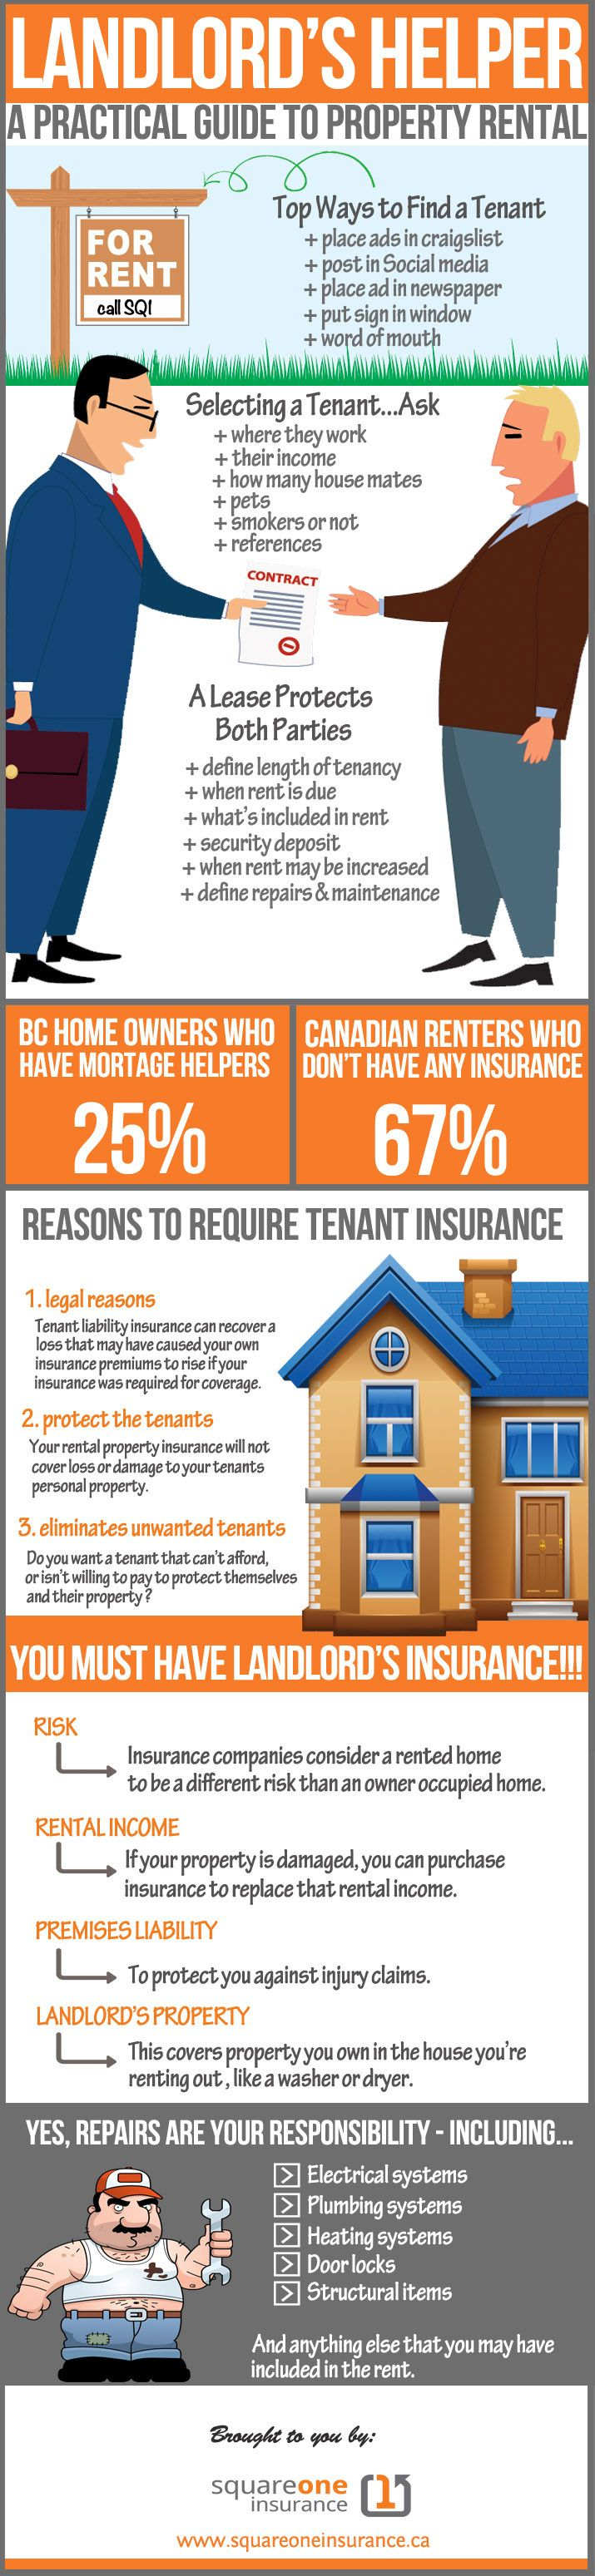 A rental property (or a rental suite in your home) can be a fantastic source of income. It can also be a major source of headaches (and costs) if you don't take steps to protect yourself. This landlord's helper infographic is designed to help you protect yourself. There are quick reference points and topics that are critical for landlords.